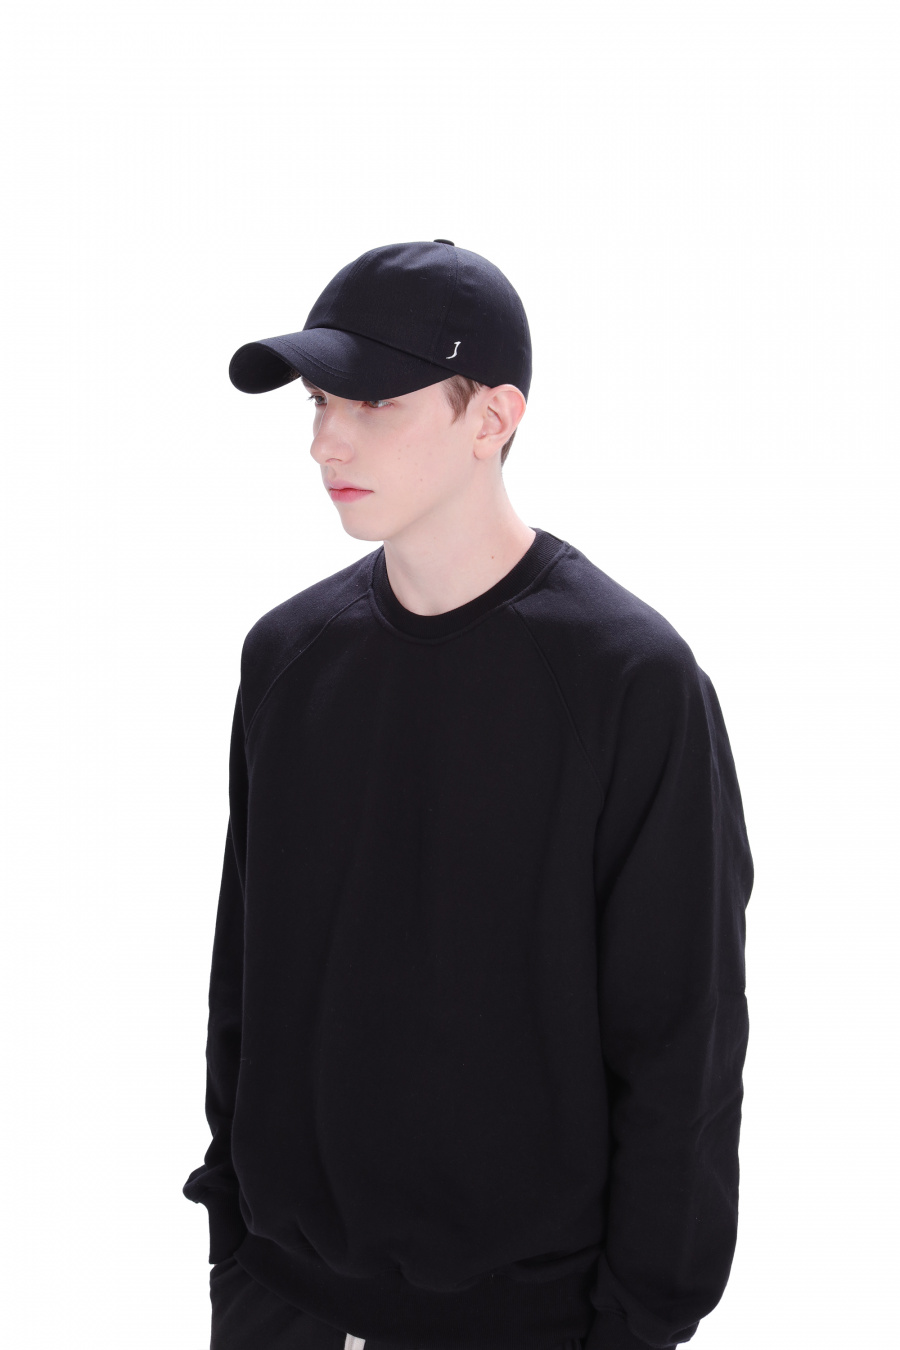 조이먼트(JOYMENT) COTTON LOGO J BALL CAP(BK)